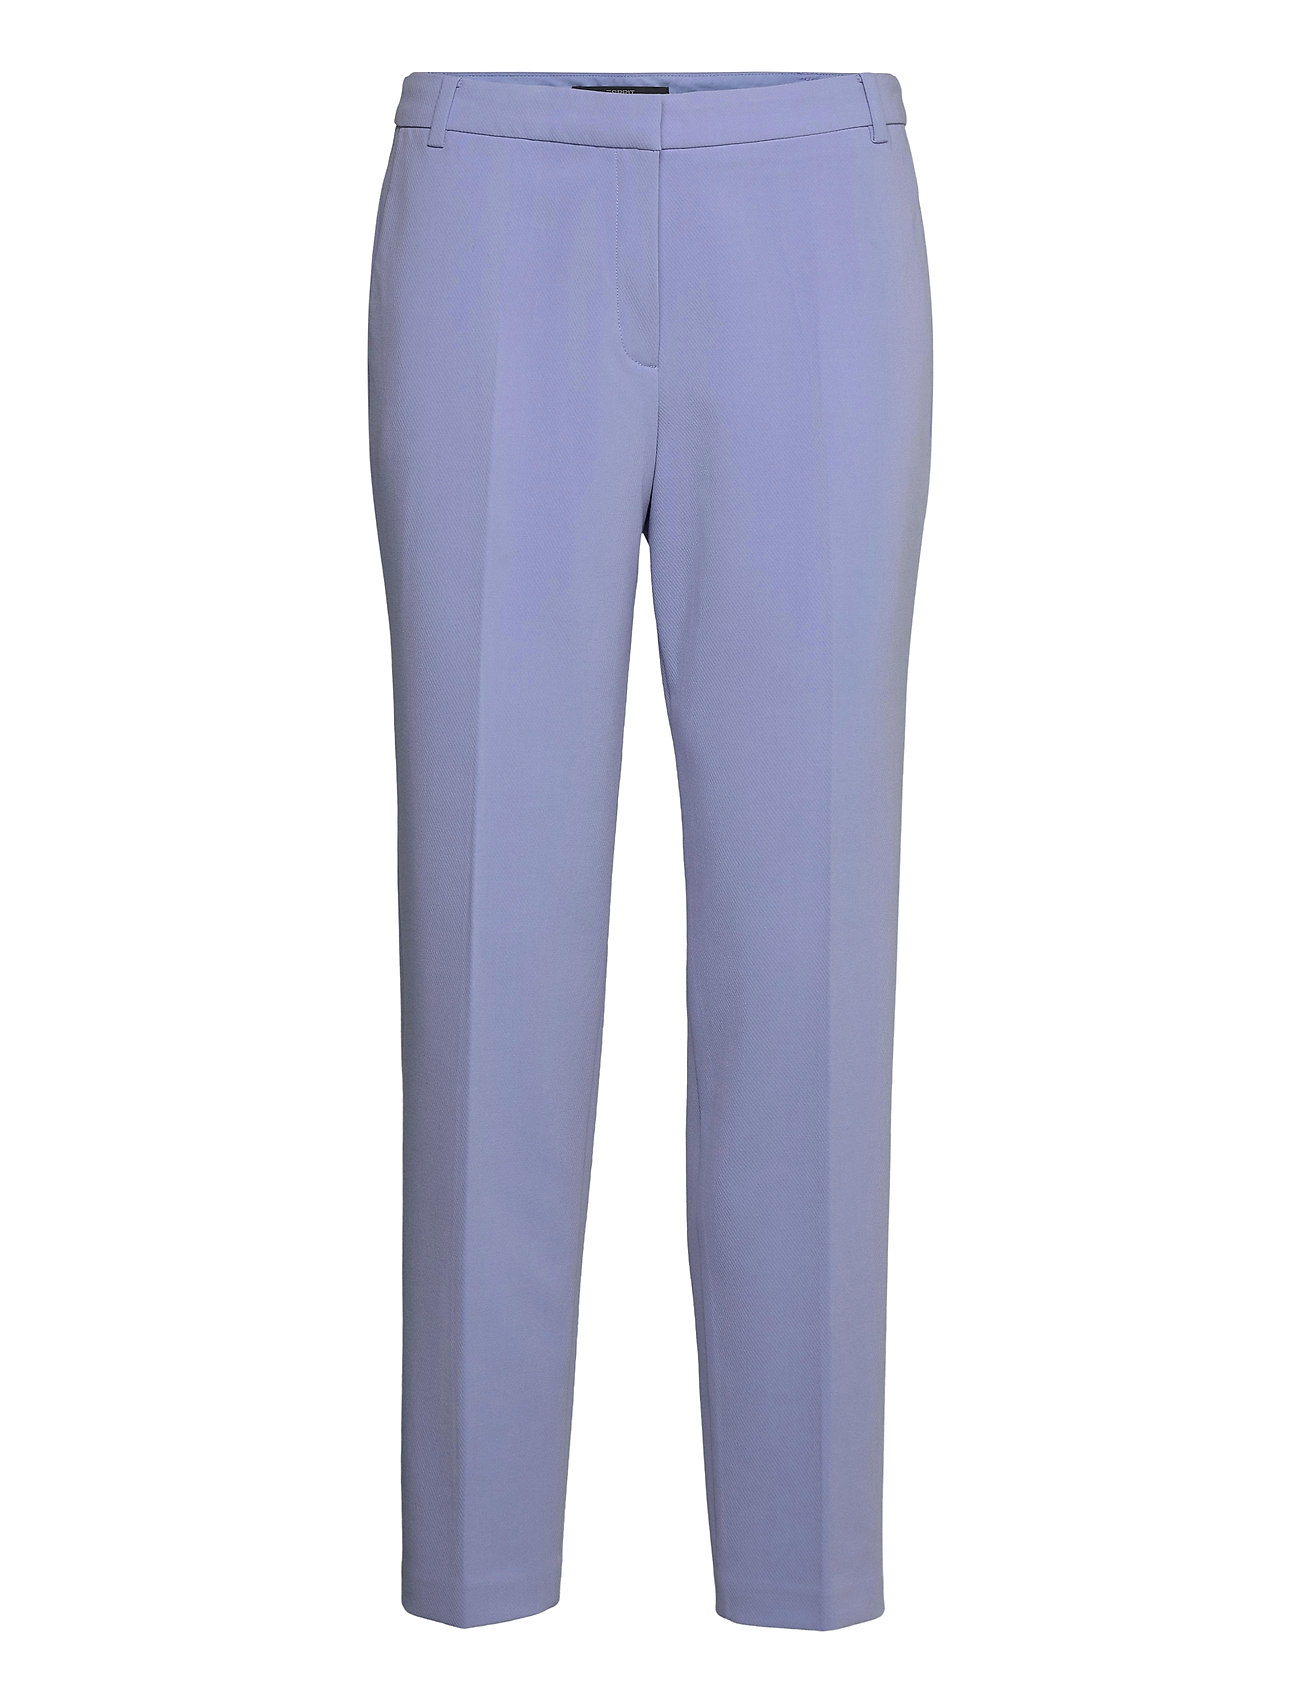 Esprit Collection Pants woven - BLUE LAVENDER